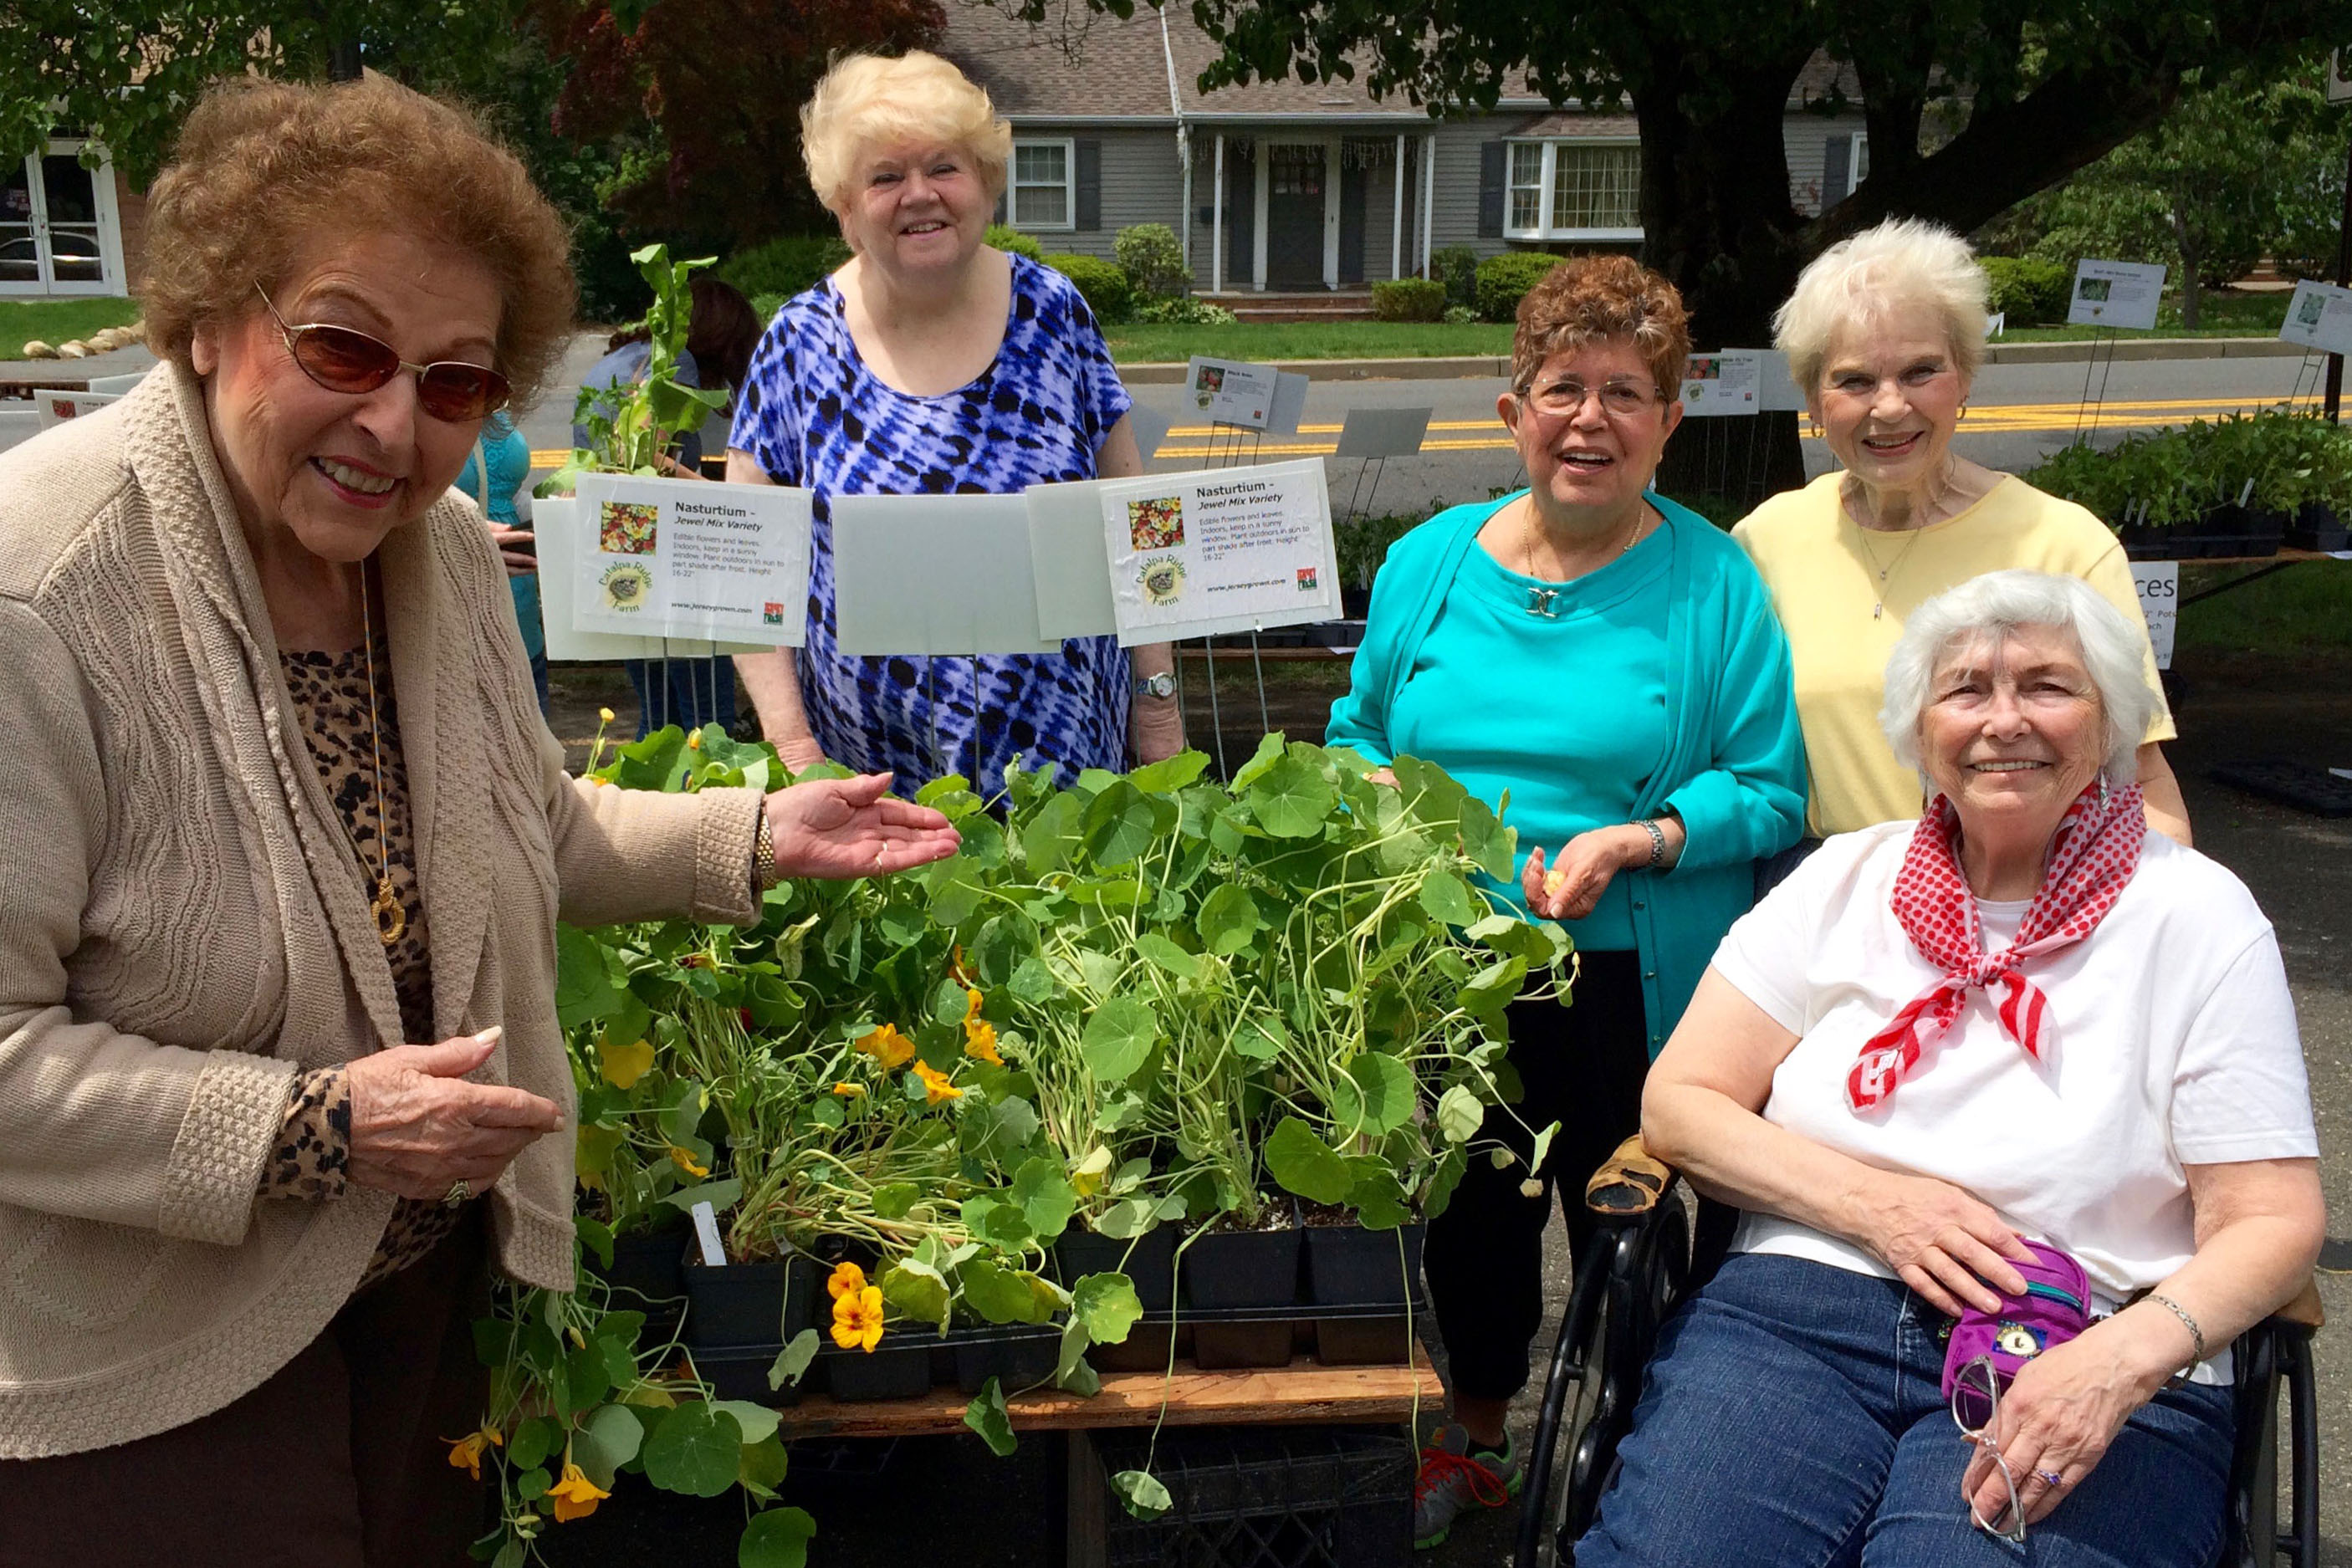 Ann Nardo, Betty Green, Julliet Borgersen, Marge Detweiler and Helen Mekita show off the nasturtiums at the May plant sale.